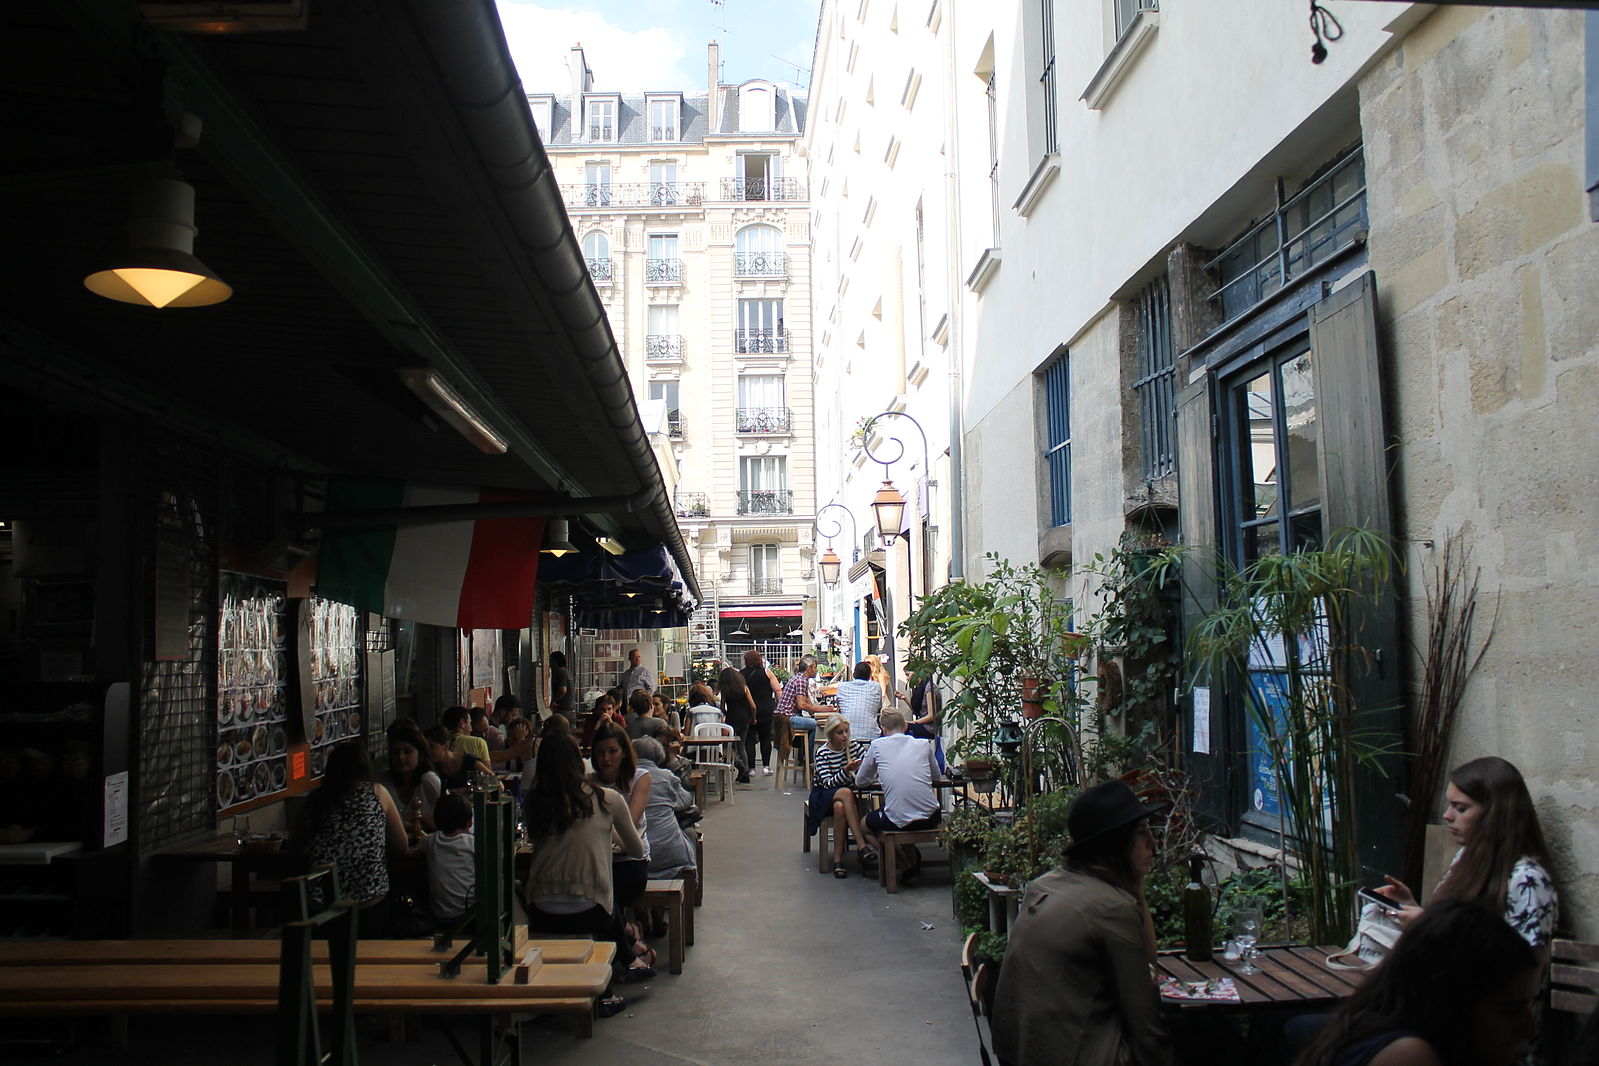 Things to do in Paris - Visit Marché des Enfants Rouges